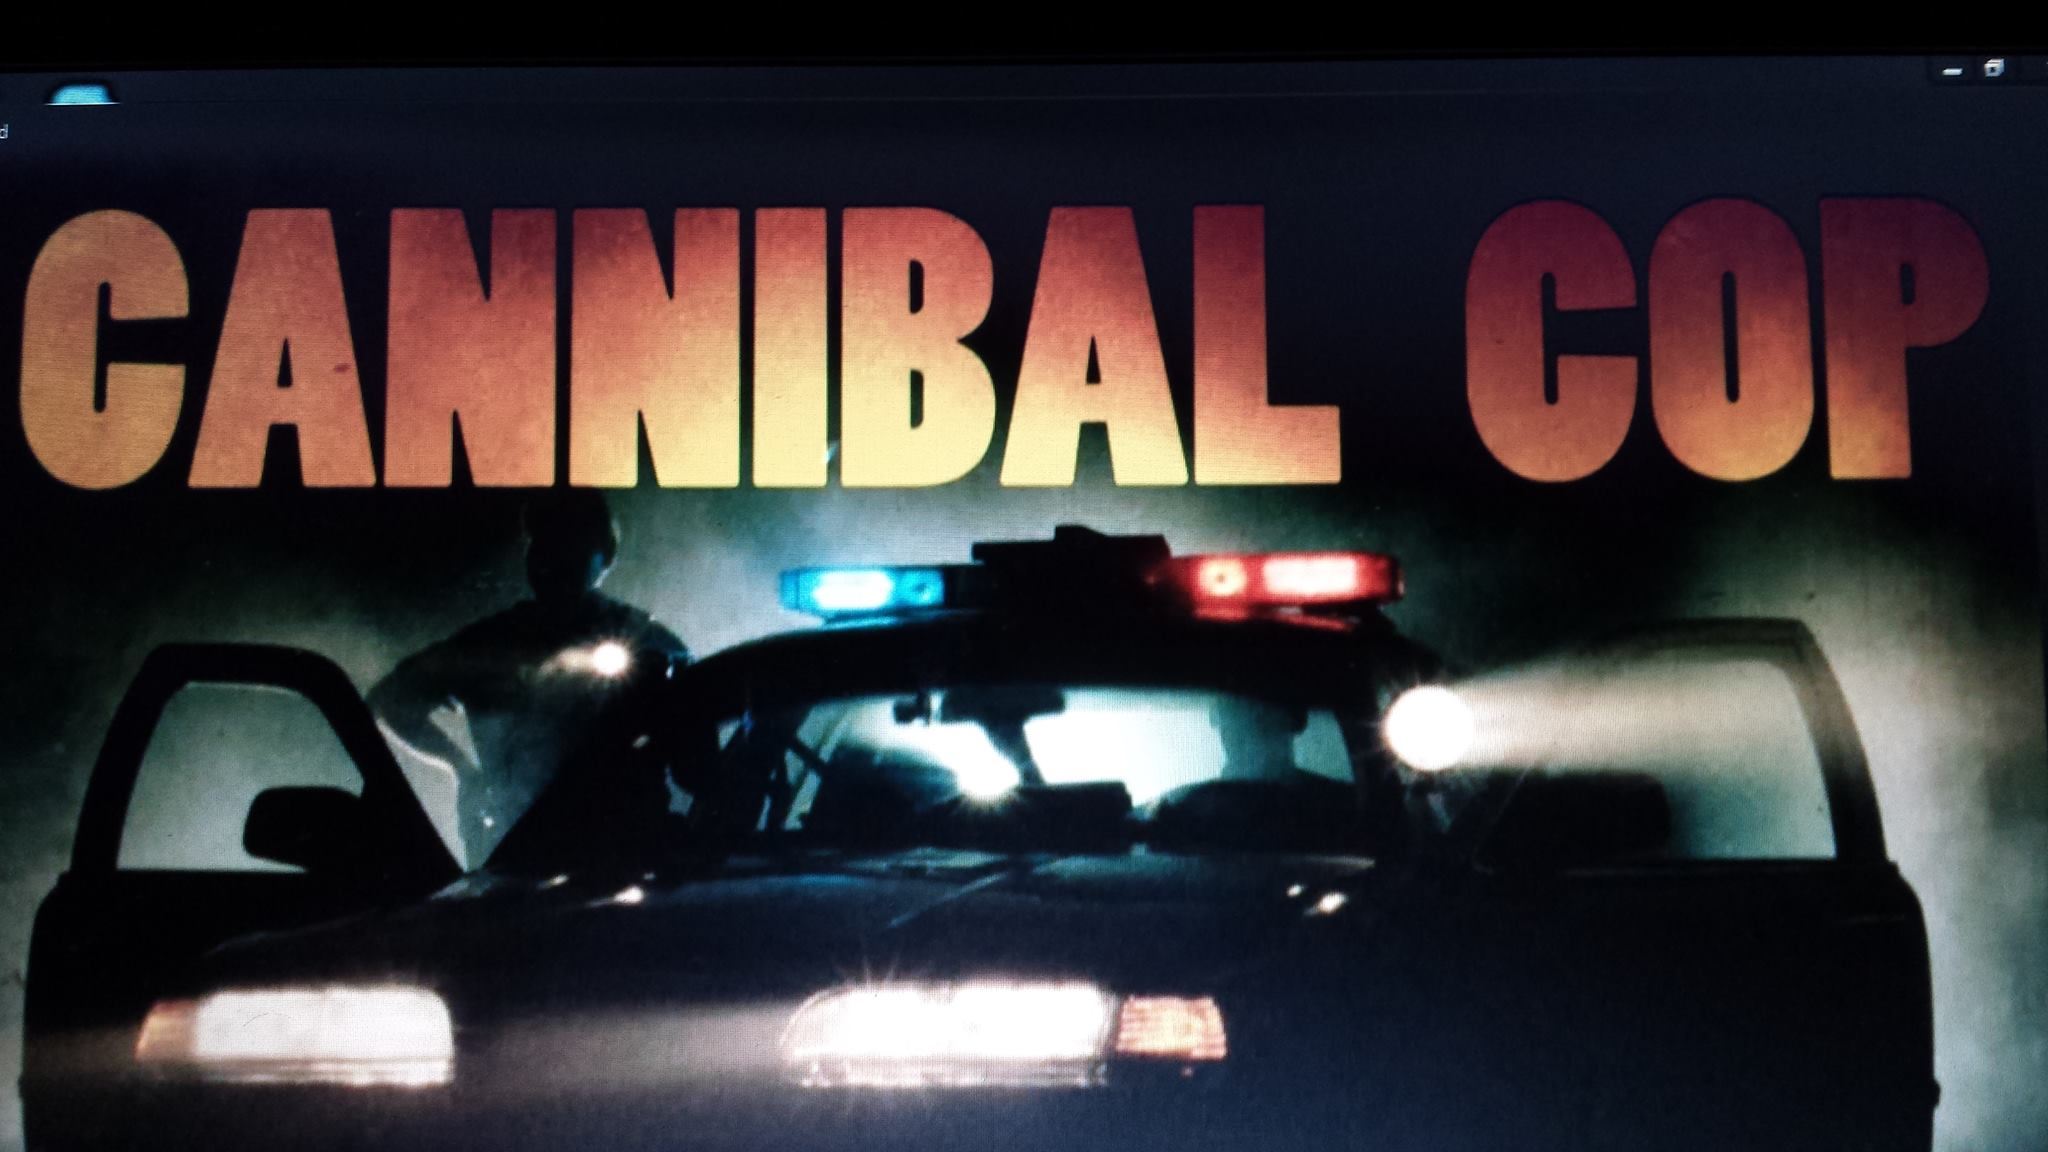 """Watch Cannibal Cop 2017: Donald Farmer's Latest Work, """"Cannibal Cop"""", Tears Into"""